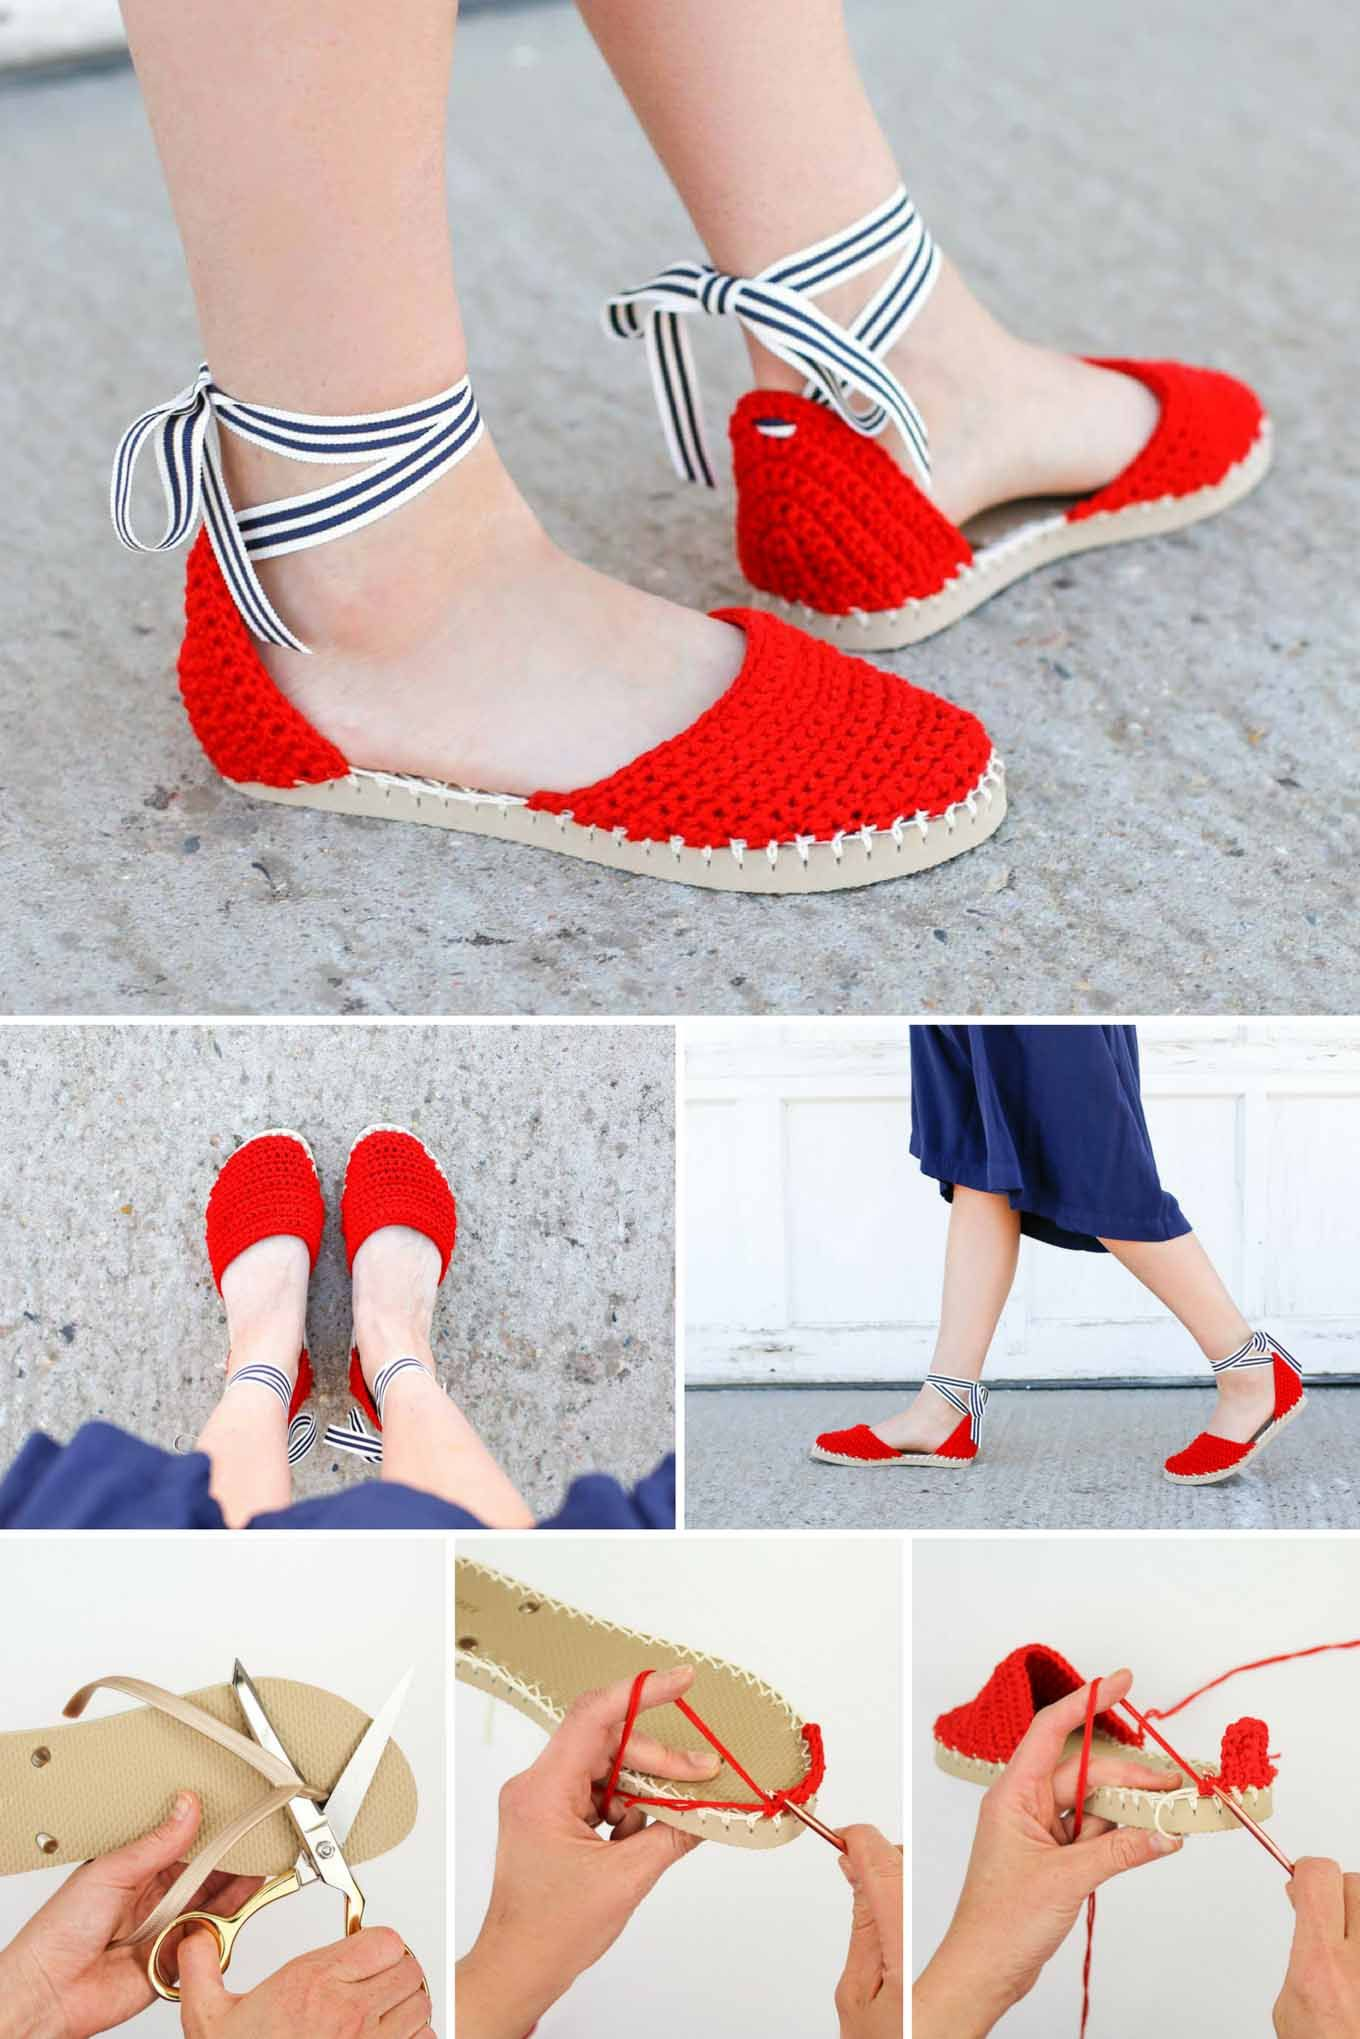 fcb7bc4e09479 Learn how to make crochet espadrilles with flip flop soles in this free  pattern and tutorial. Pair these fun crochet sandals with a dress!